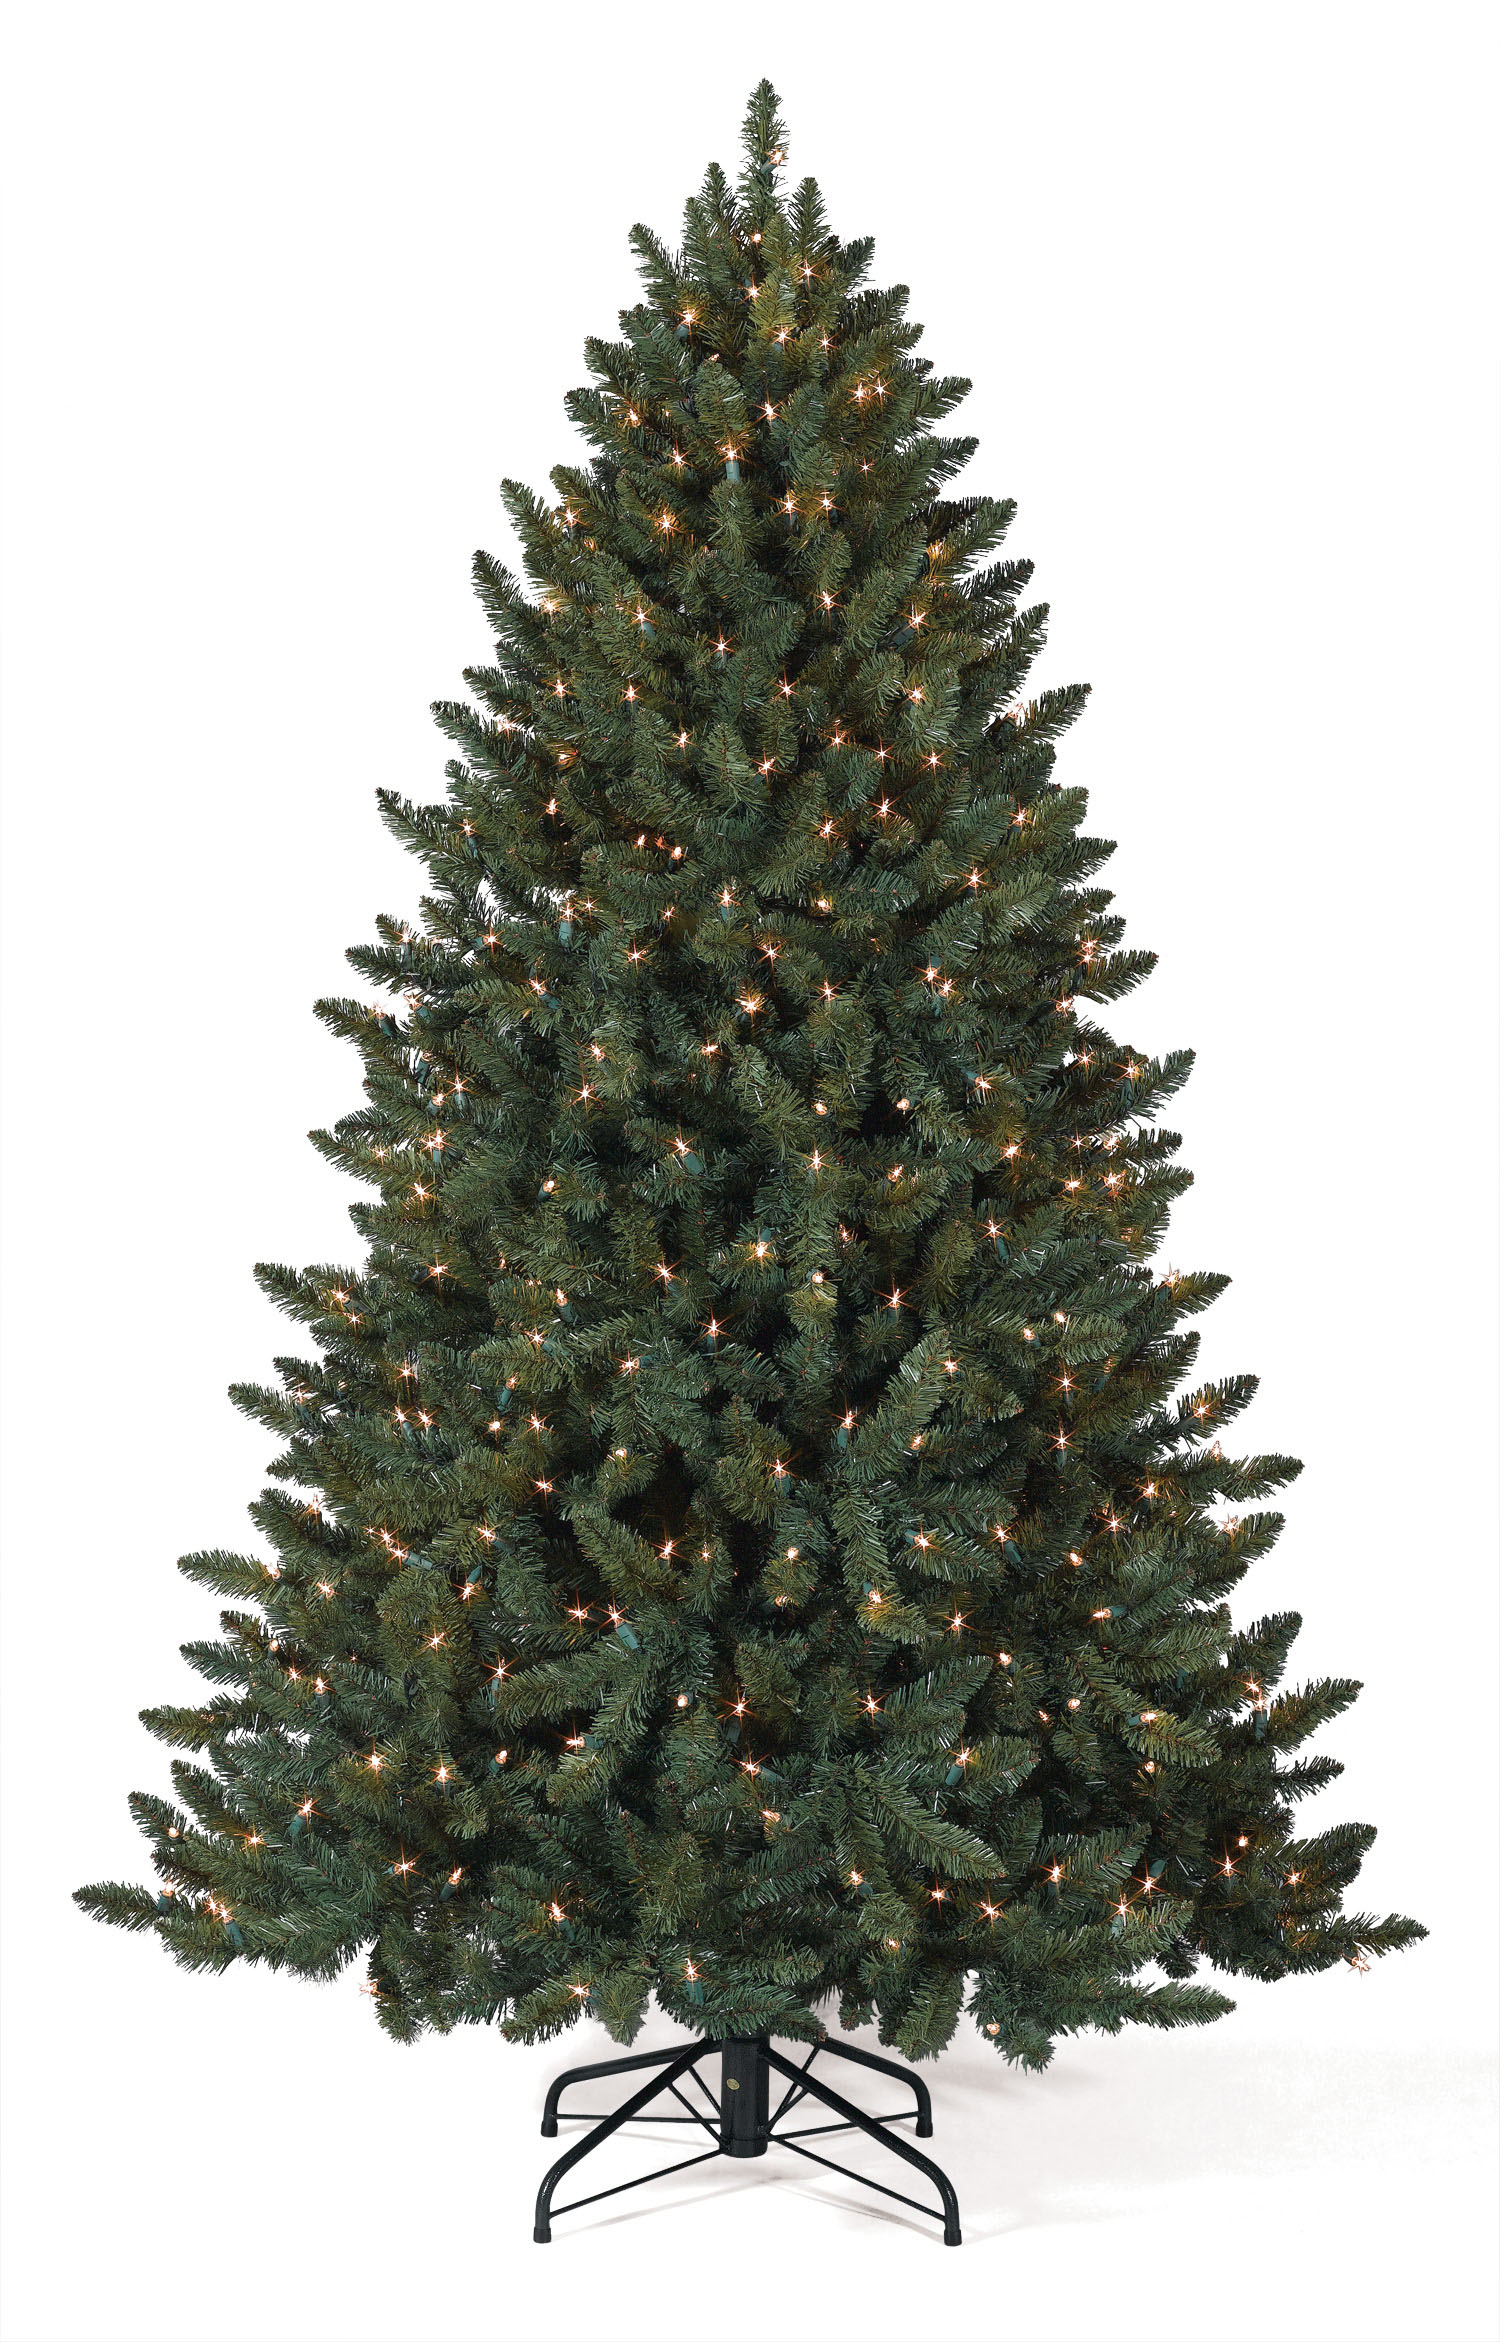 12 foot pre lit balsam spruce artificial christmas tree with colored lights - 12 Foot Christmas Tree